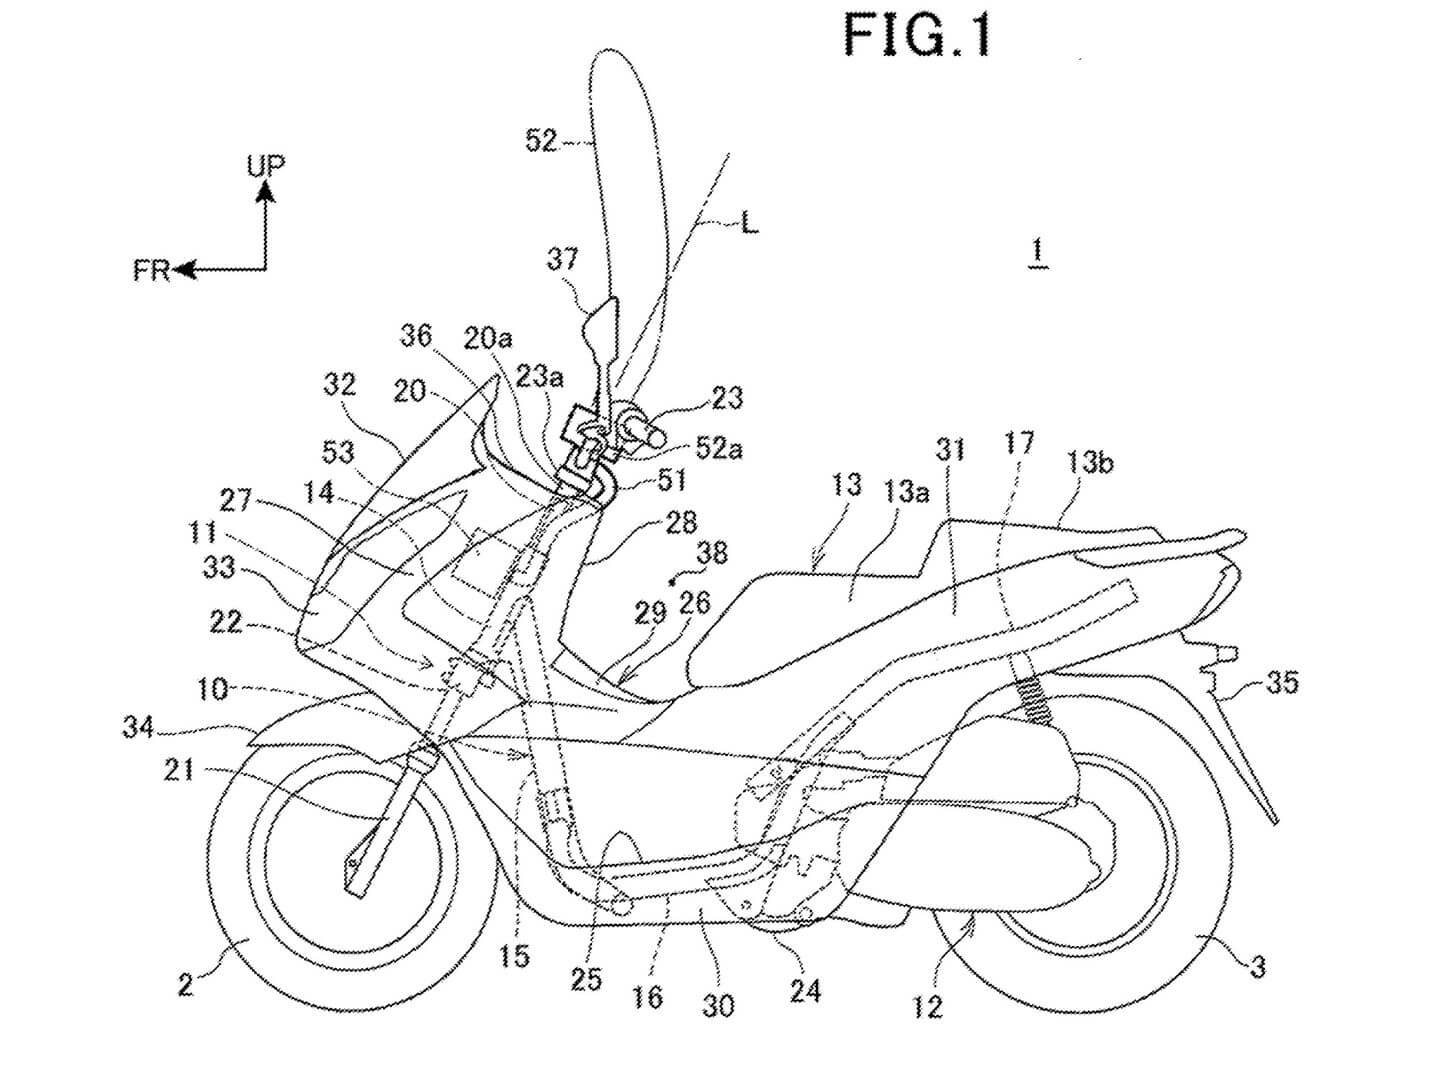 New 2023 Honda Motorcycle / Scooter Airbag Models Releasing Soon? New Patent Documents Filed...